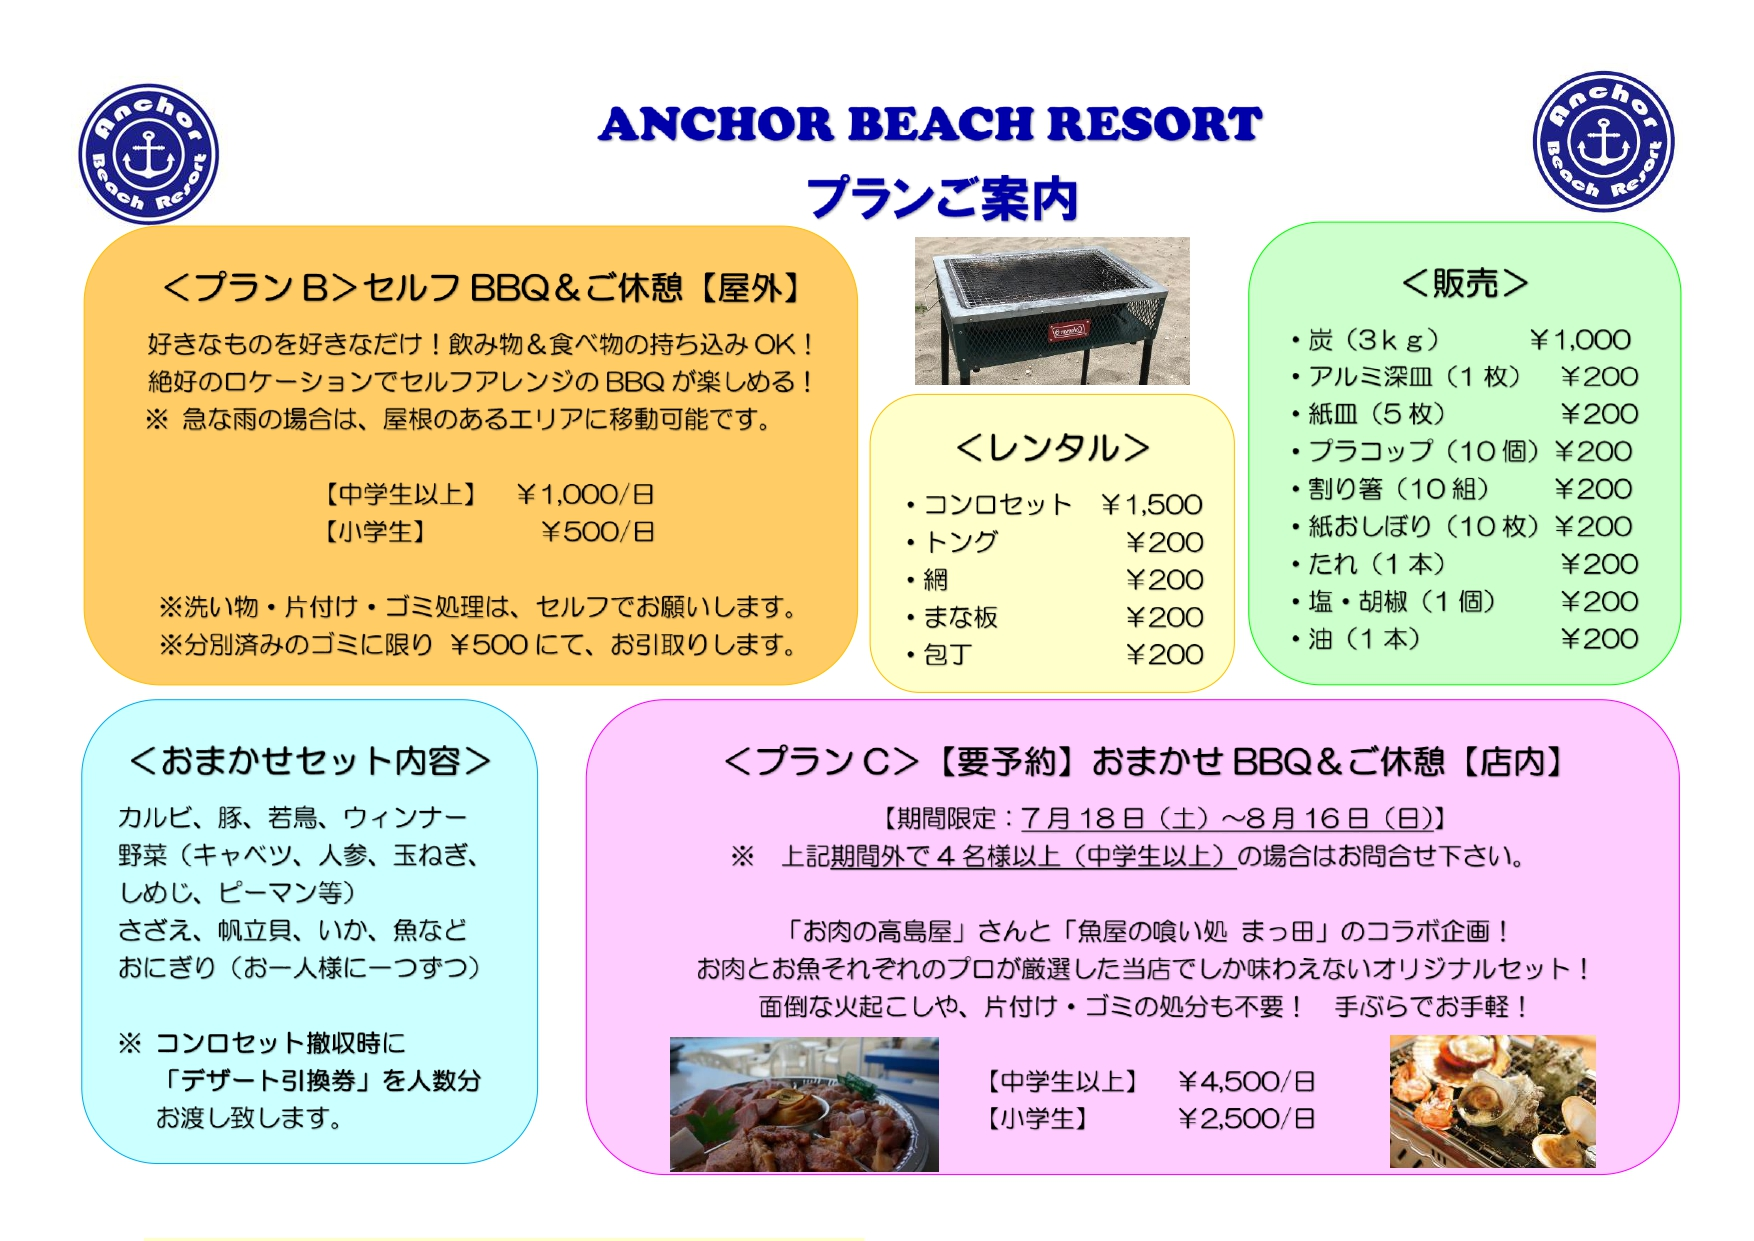 ABRご利用案内(2020)_page-0003.jpg